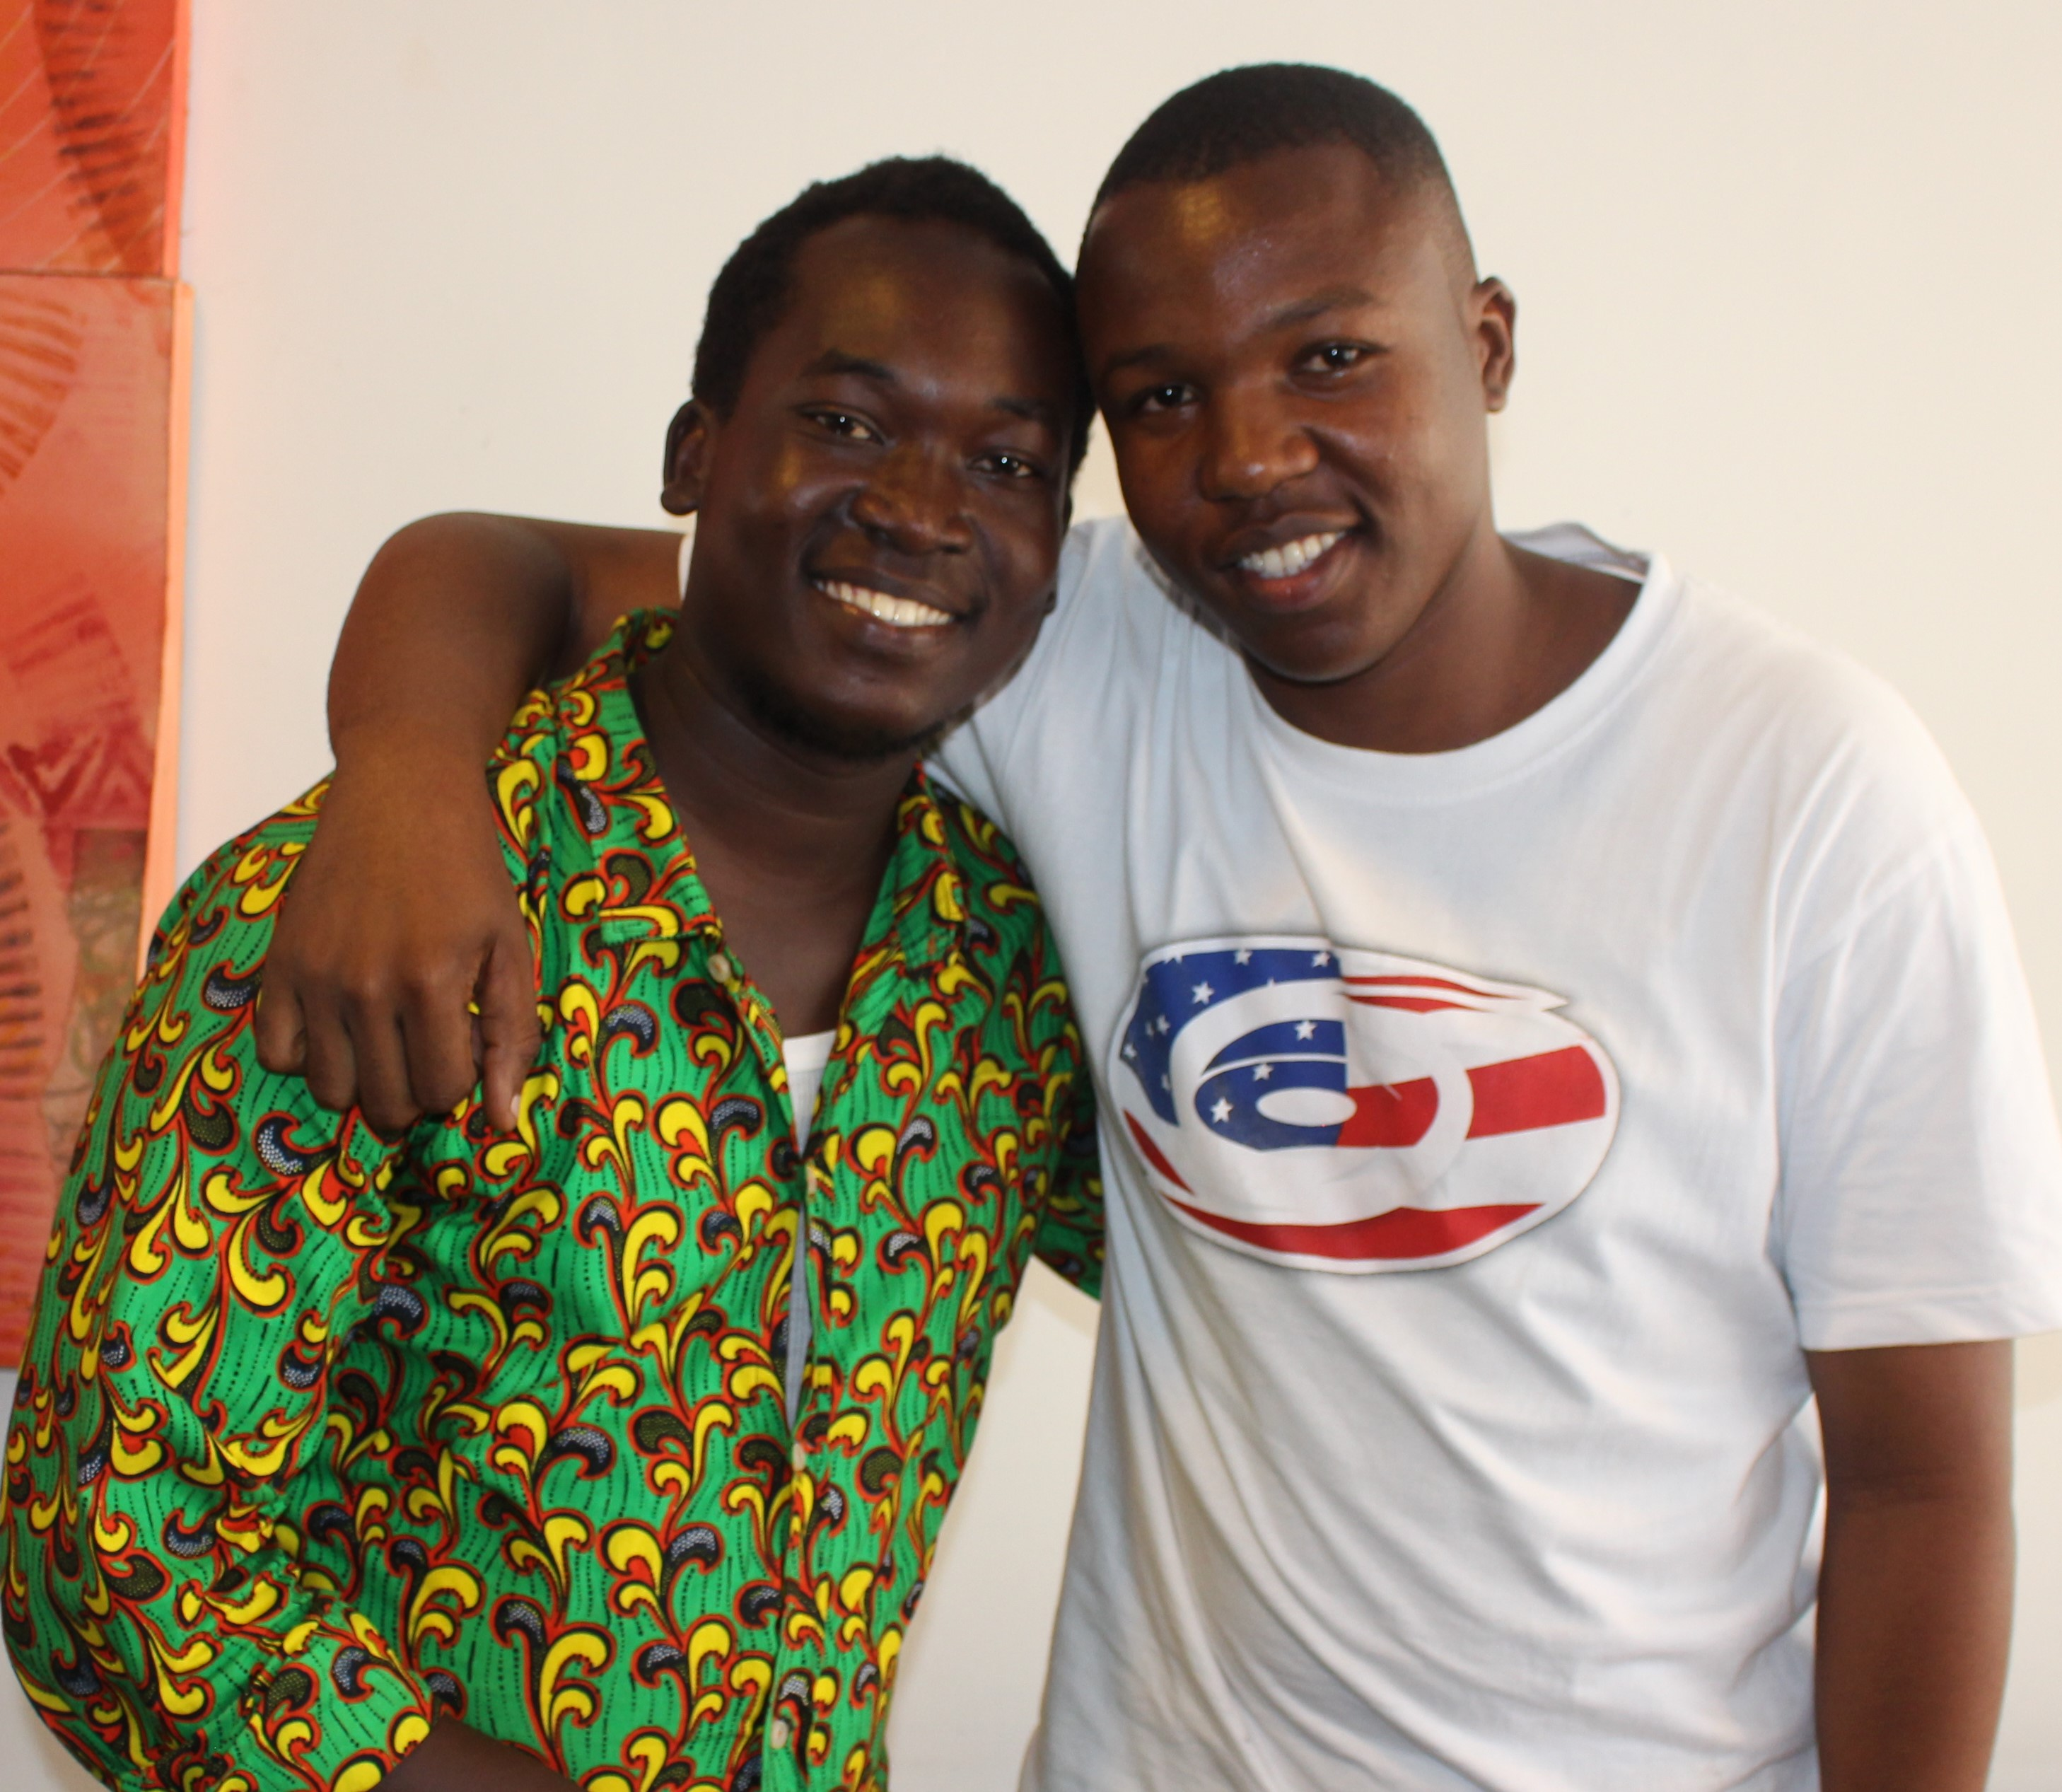 Two A young Tanzanian men smiling at the camera